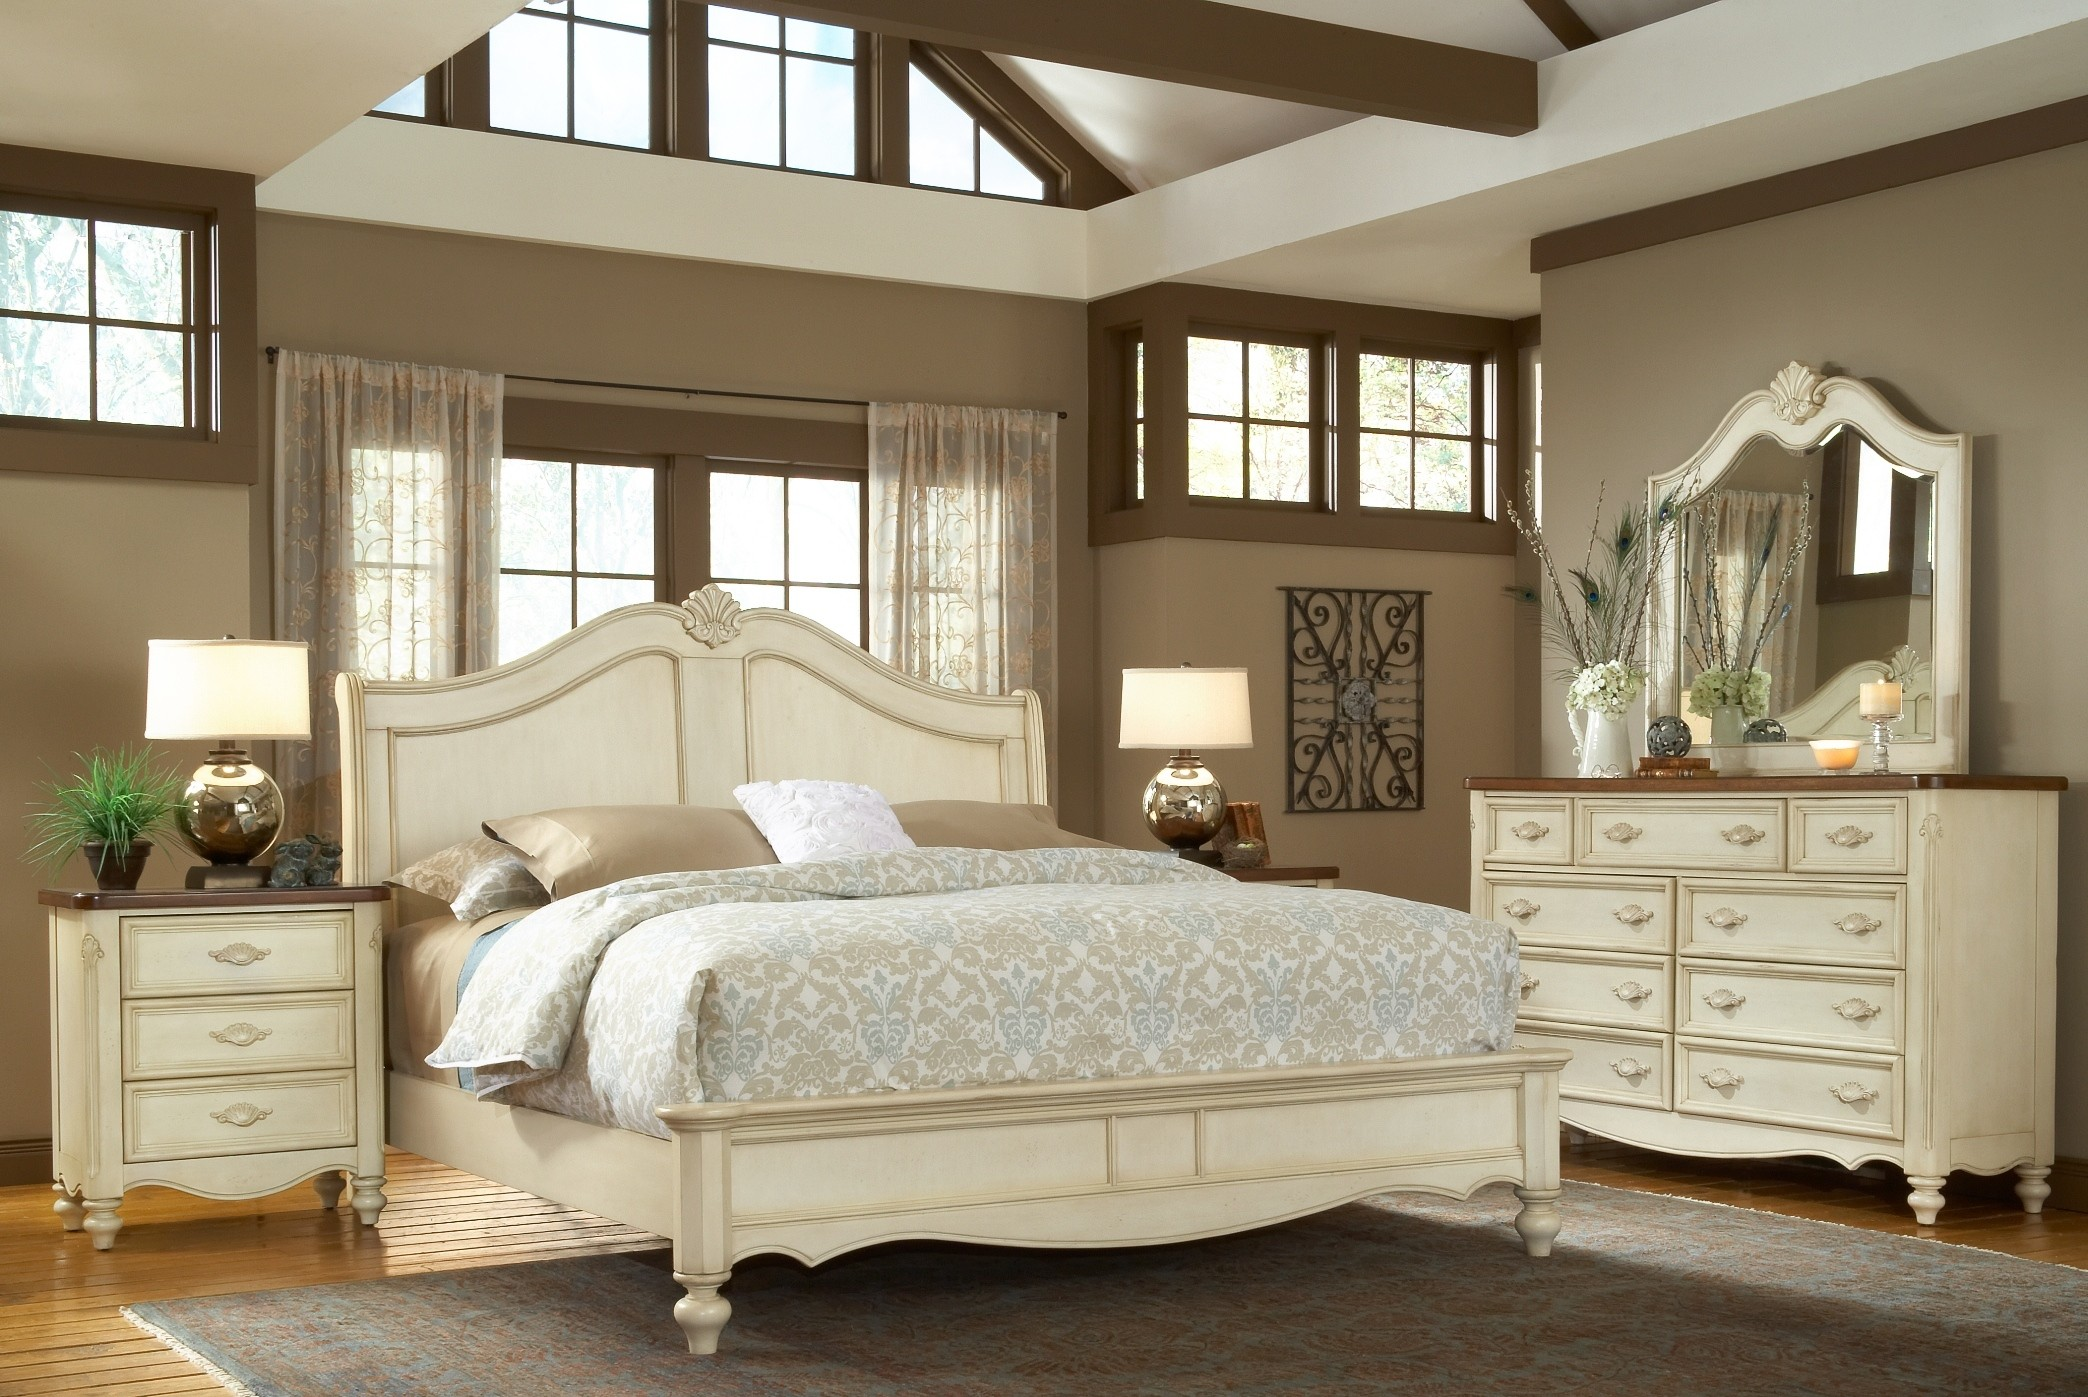 Chateau Bedroom Collection From American Woodcrafters. 2292762